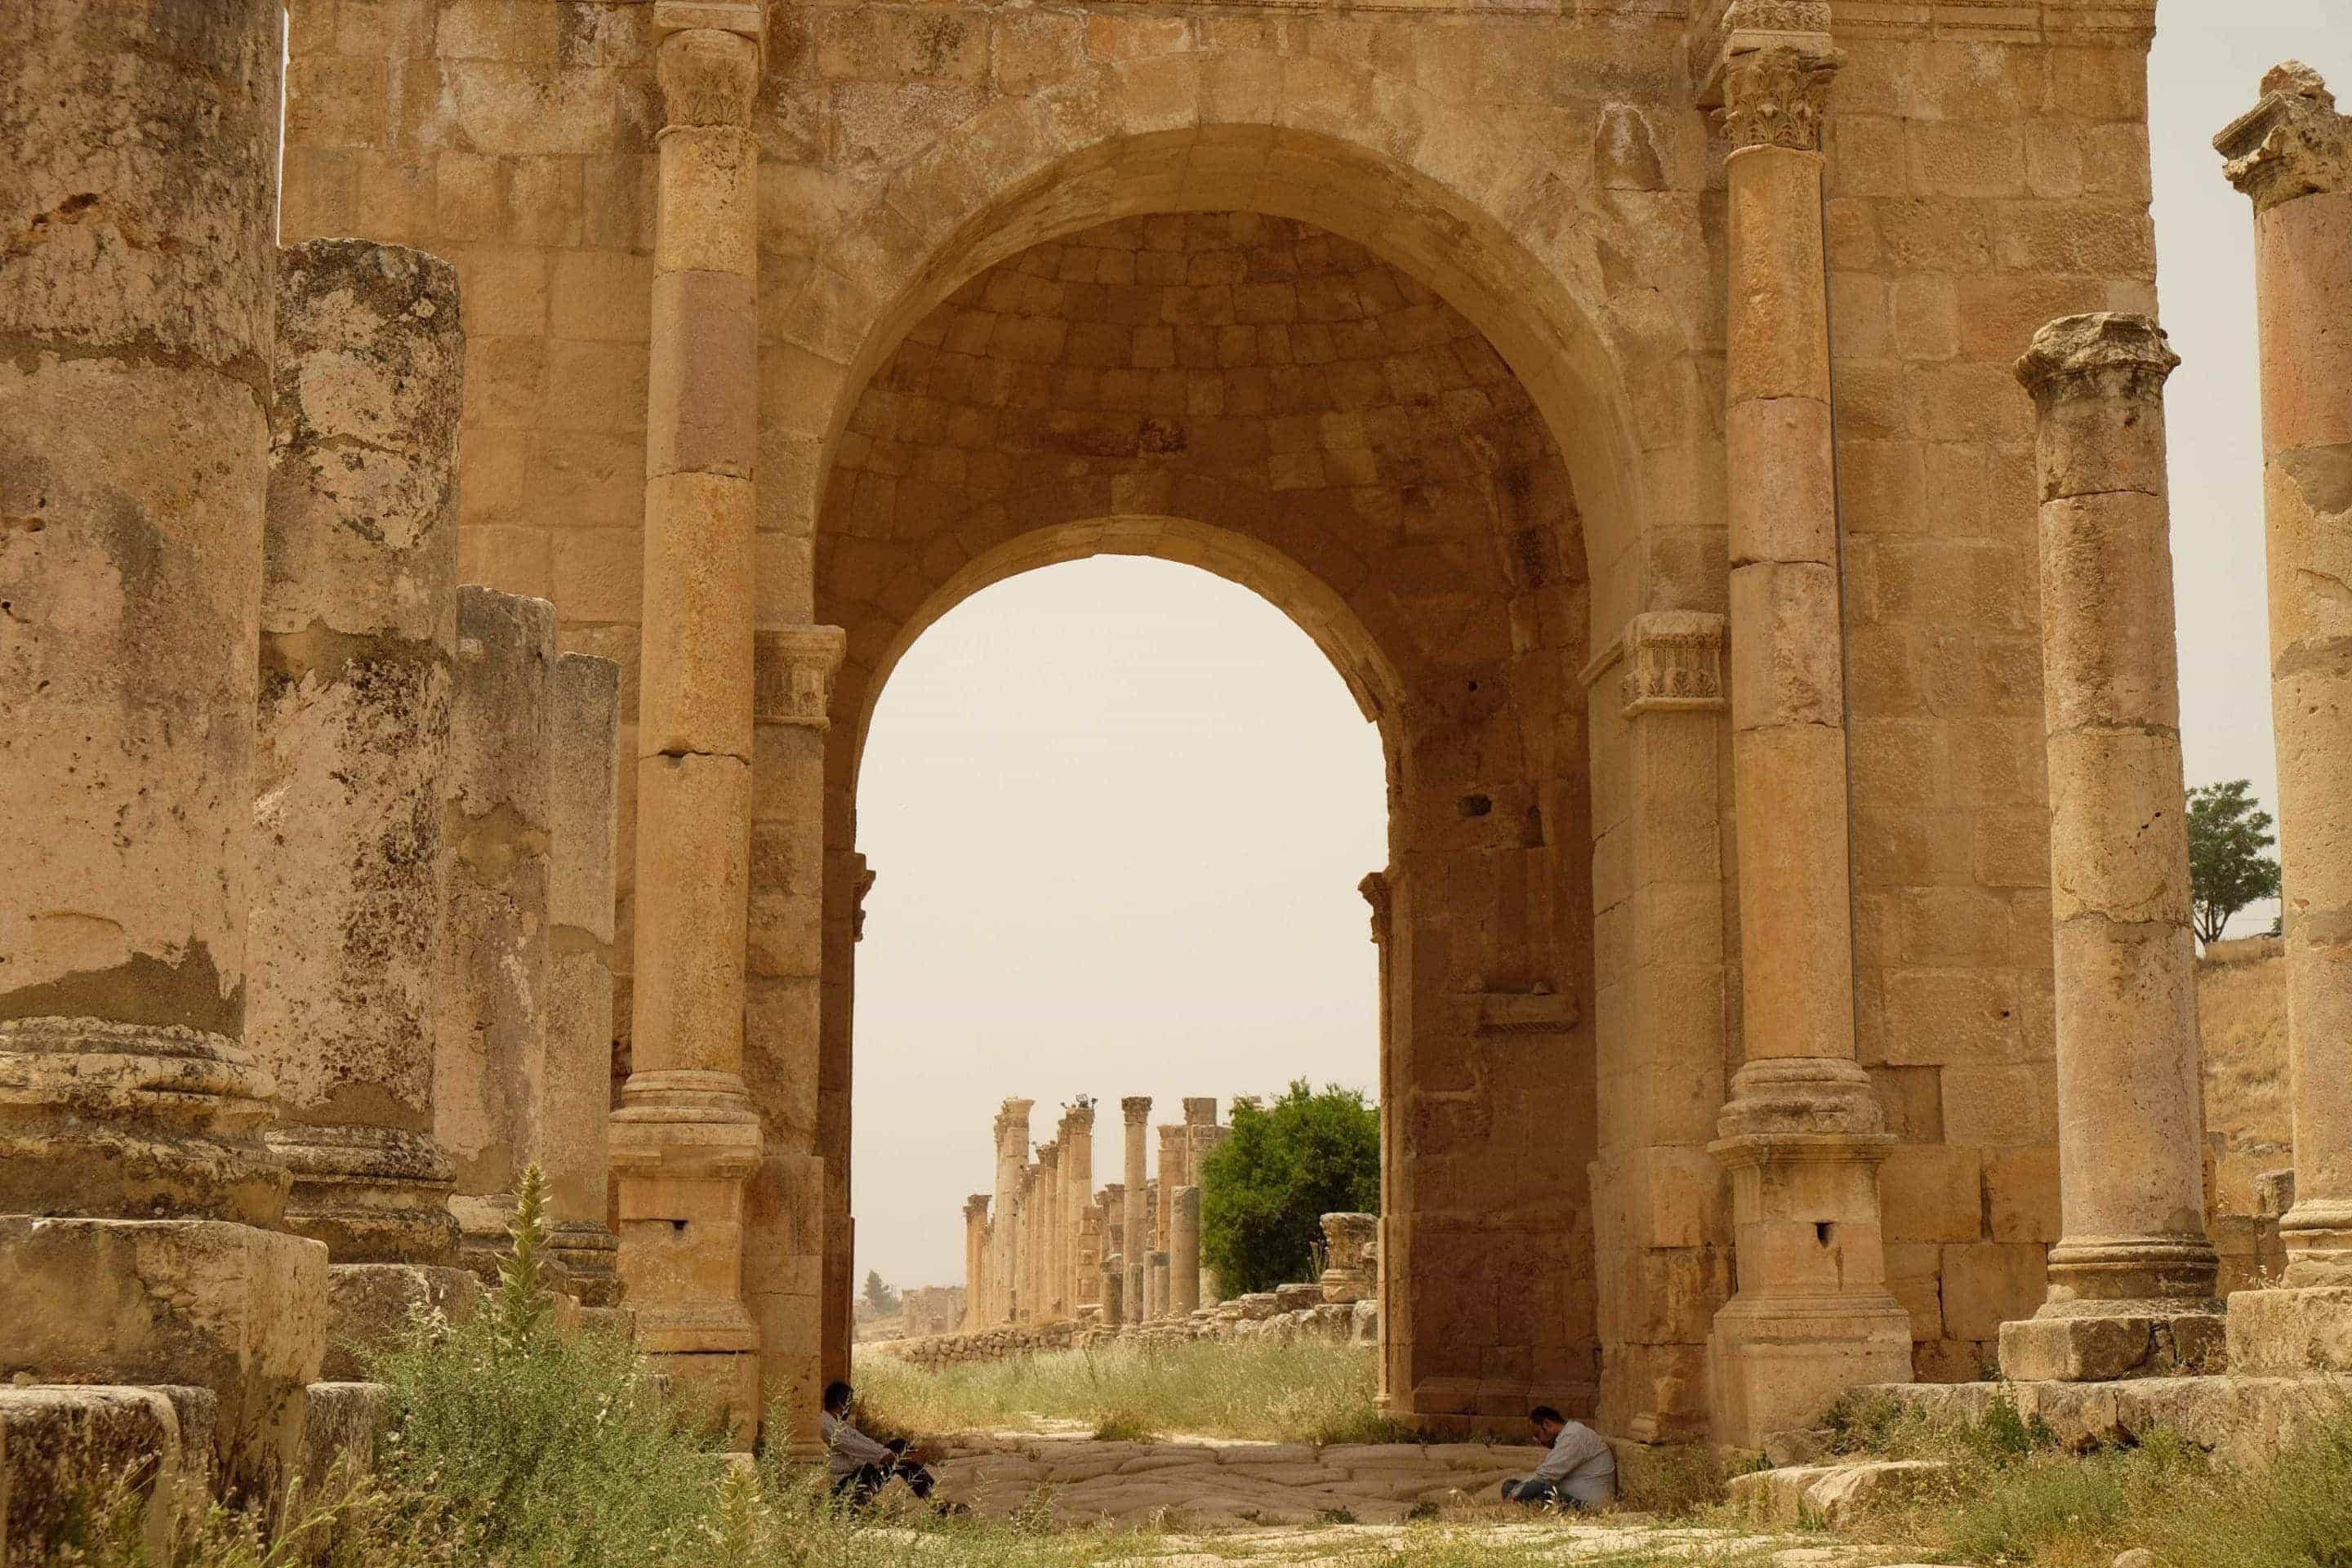 The final gate at Jerash and the end of the colonnaded street. Photo: Genevieve Hathaway Photography.